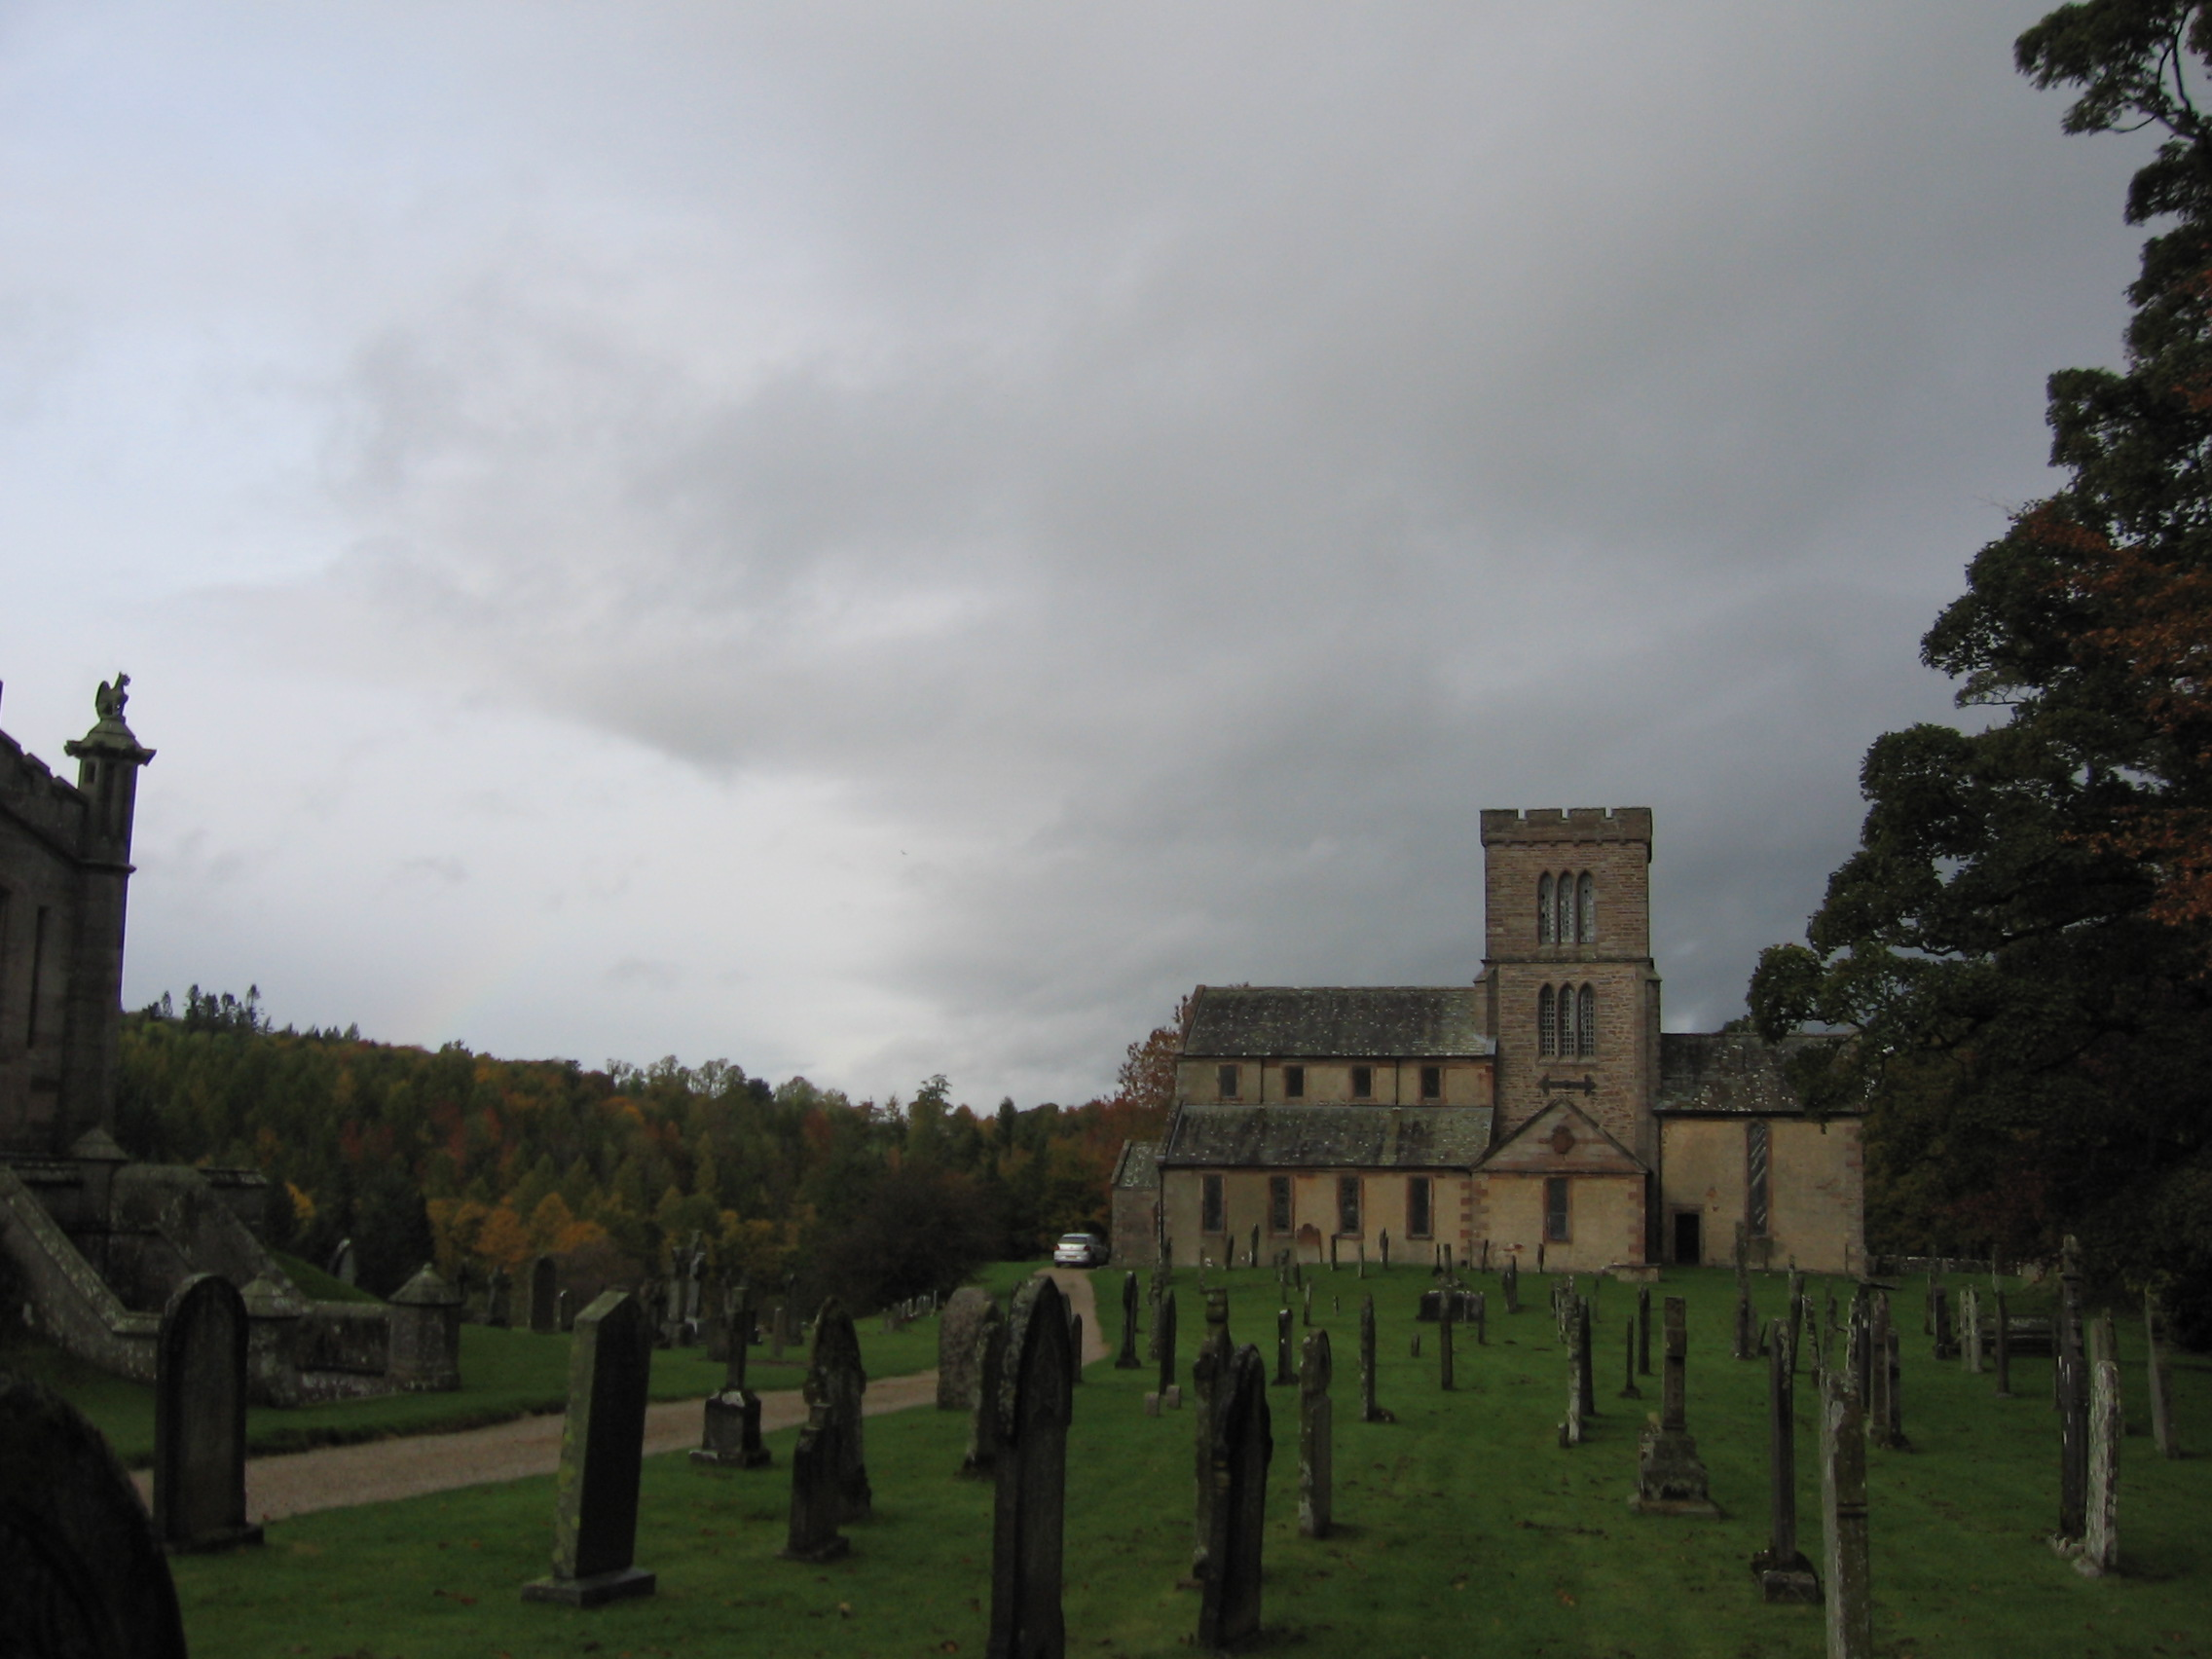 St. Micheal's church in Lowther